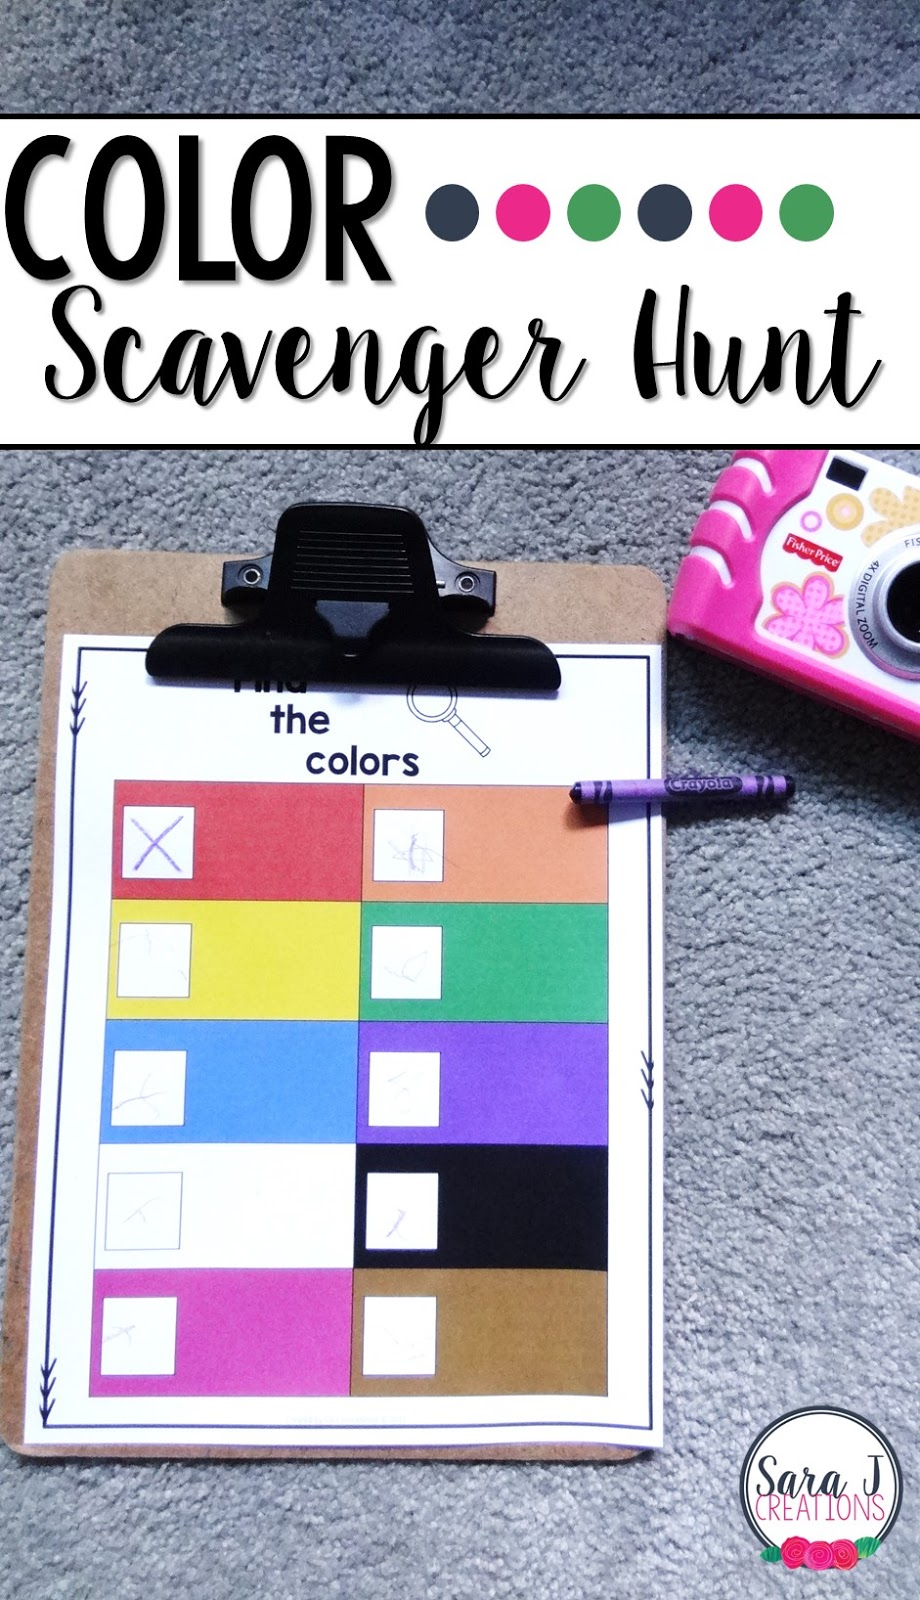 Reviewing colors?  Try a color scavenger hunt around your house, school or neighborhood.  So fun for kids!